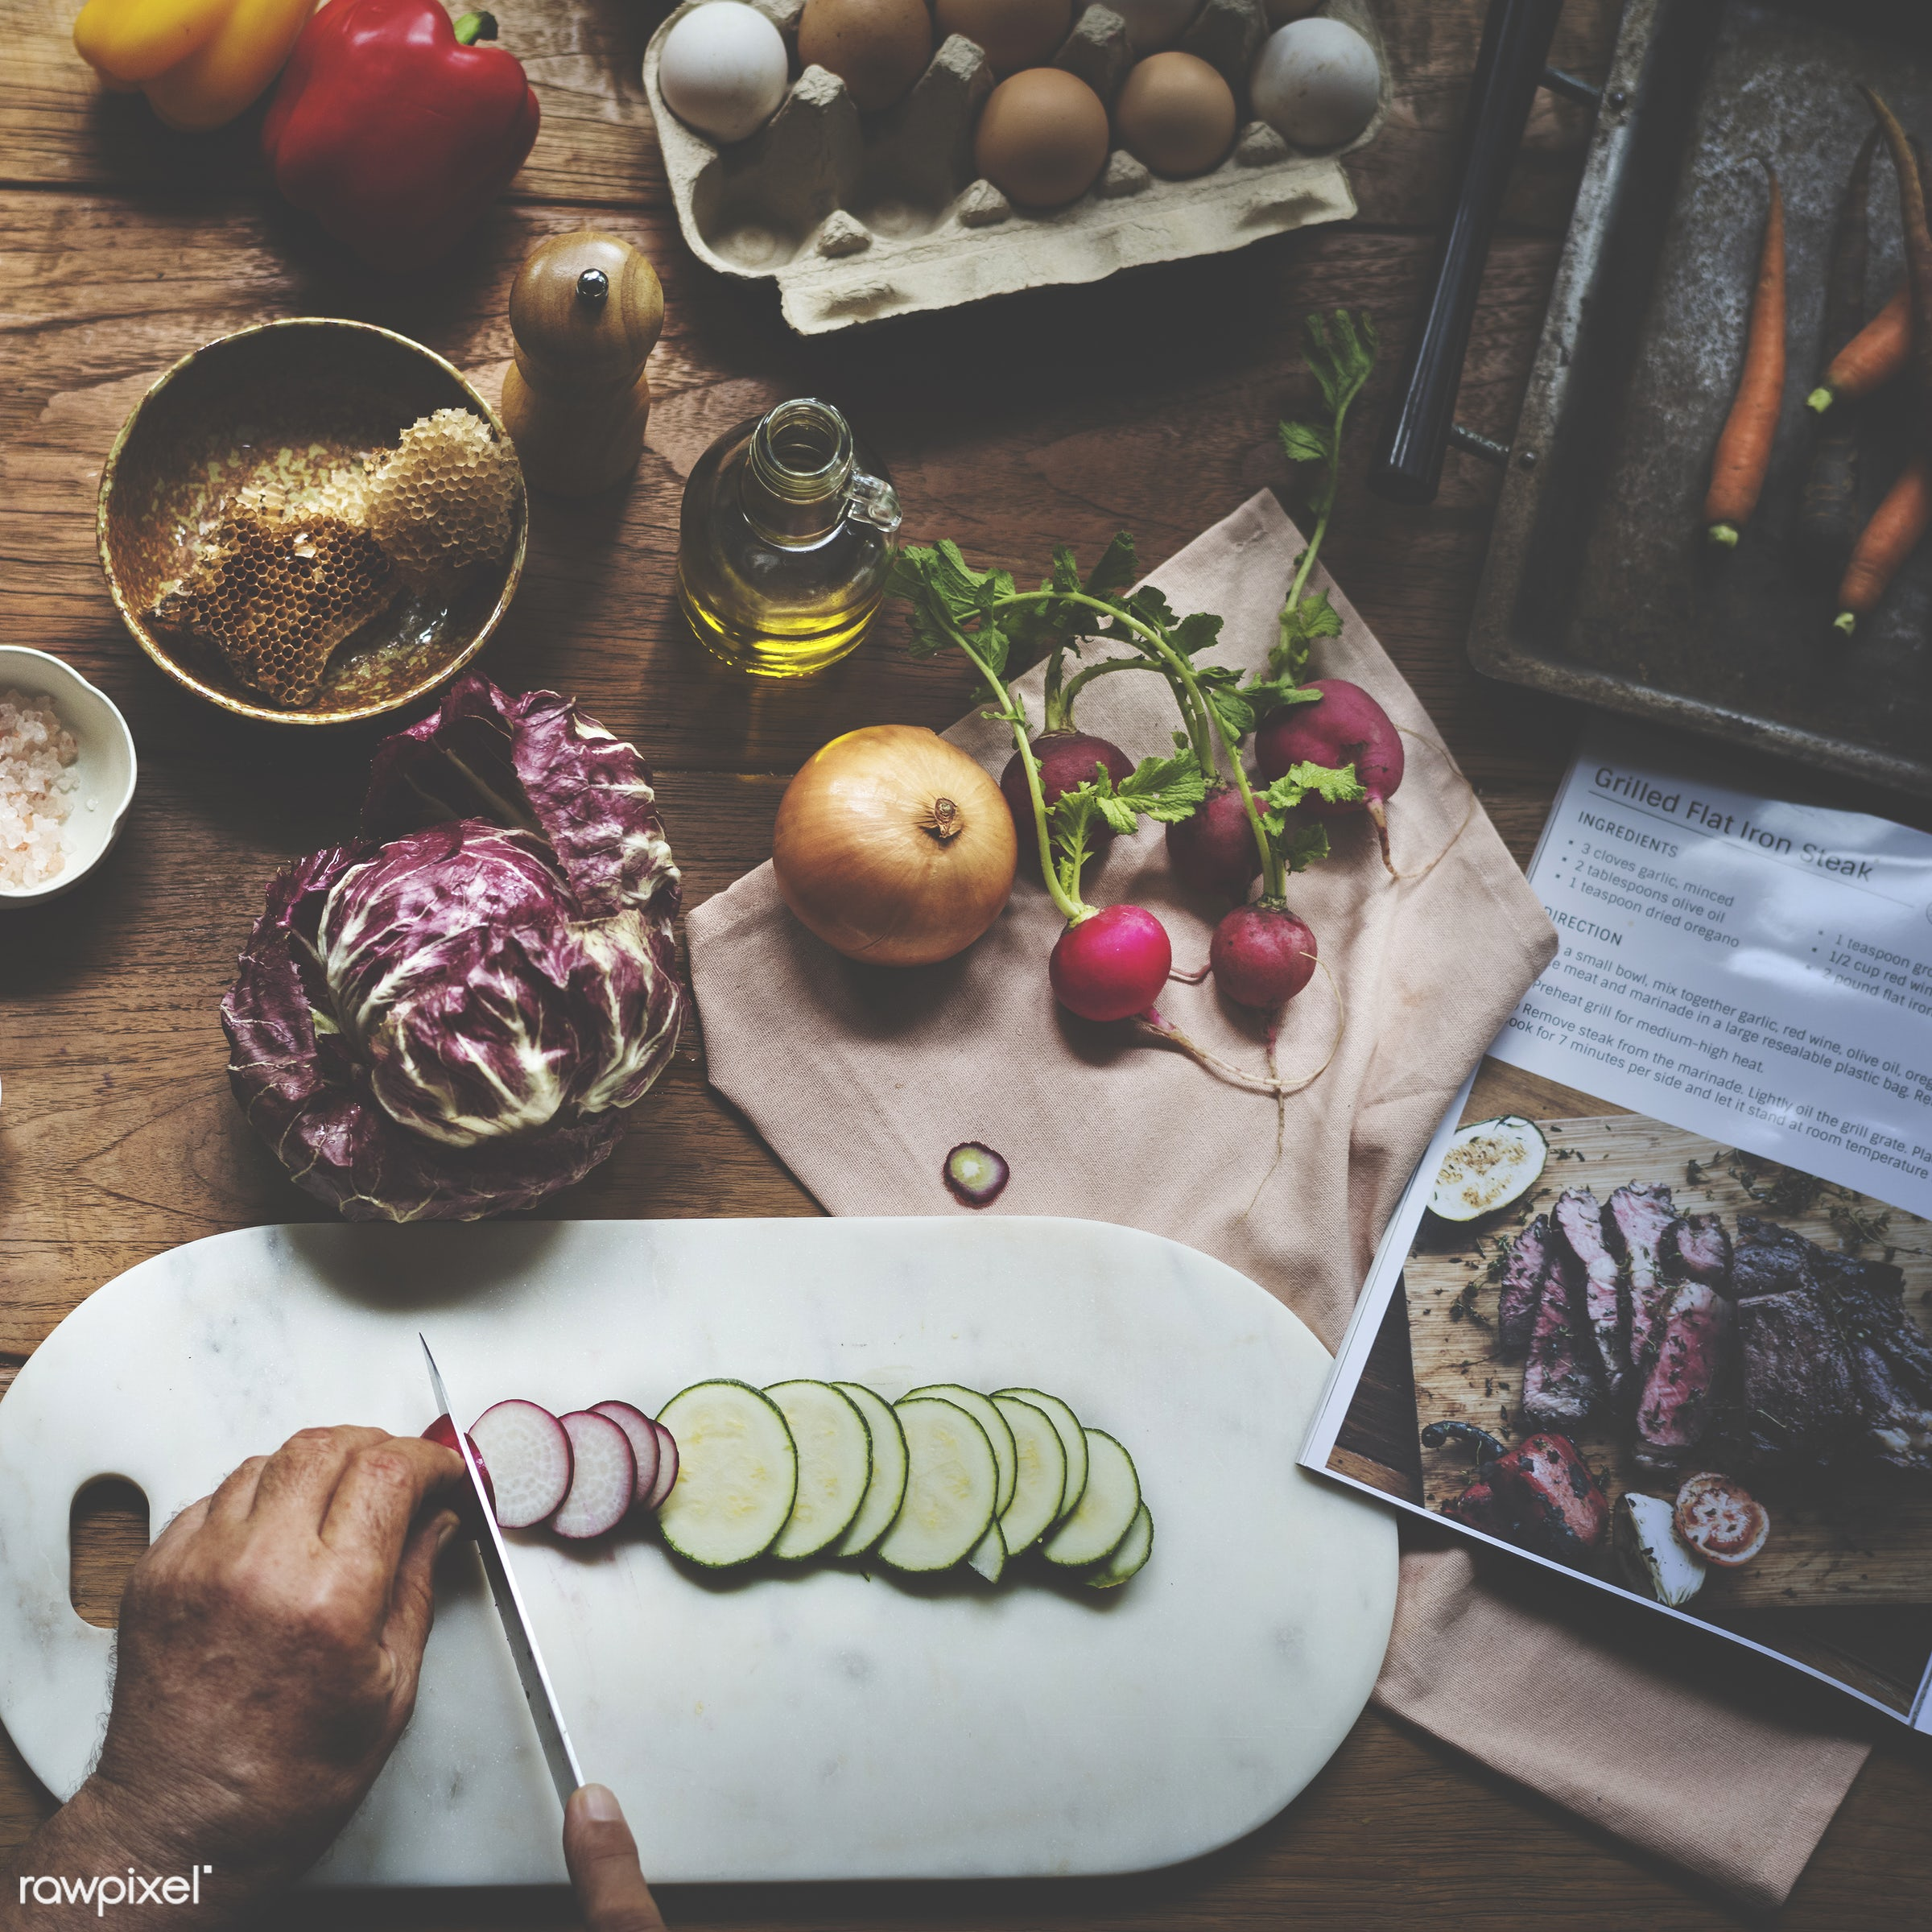 recipe, cuisine, homemade, fresh, ingredient, cooking, knife, gourmet, meal, cook, preparation, cutting board, culinary,...